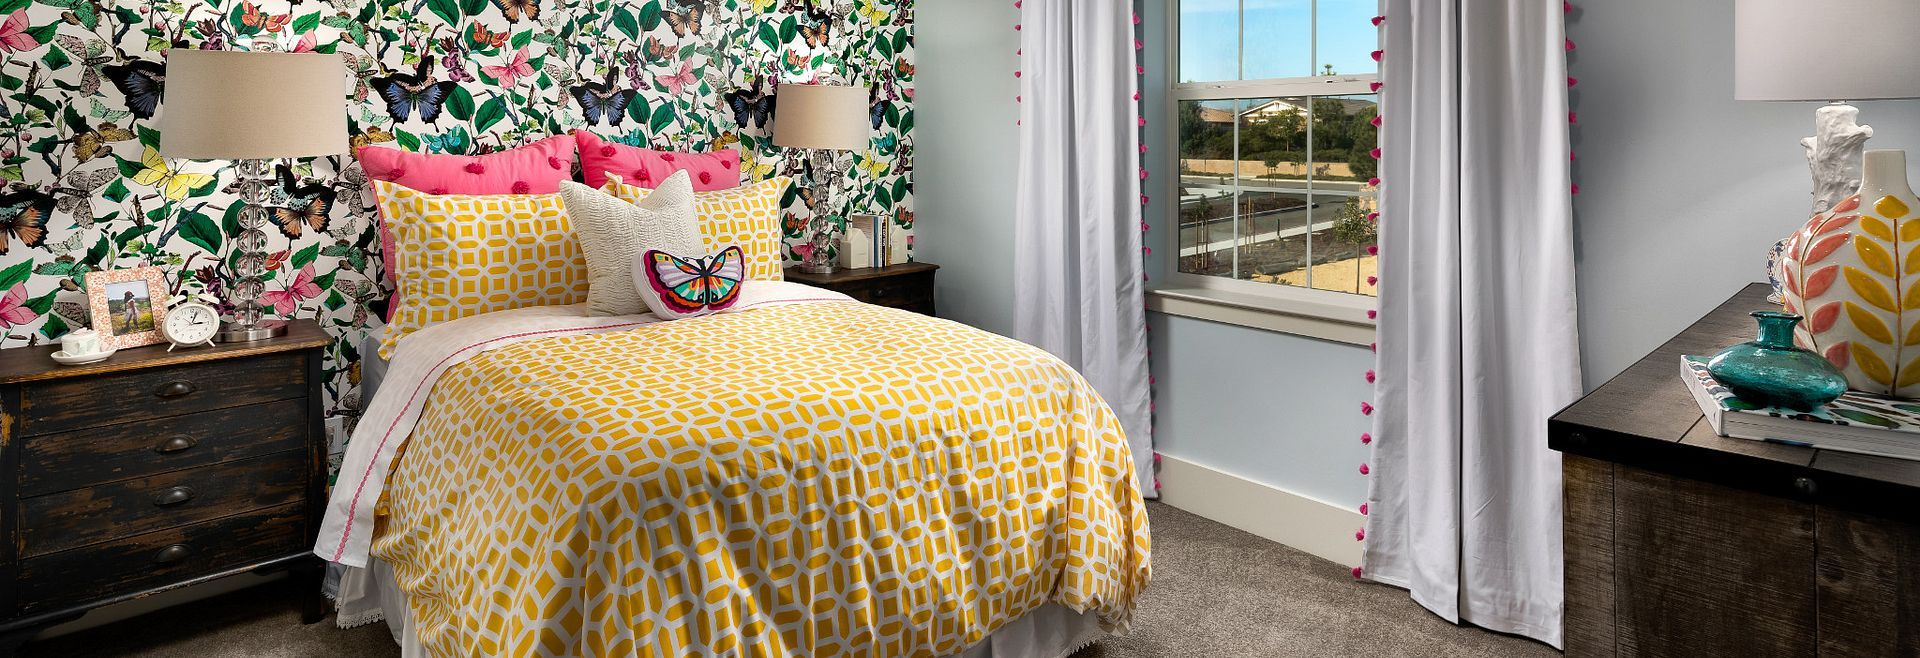 Bedroom featured in the Verbena By Shea Homes - Trilogy in Santa Barbara, CA